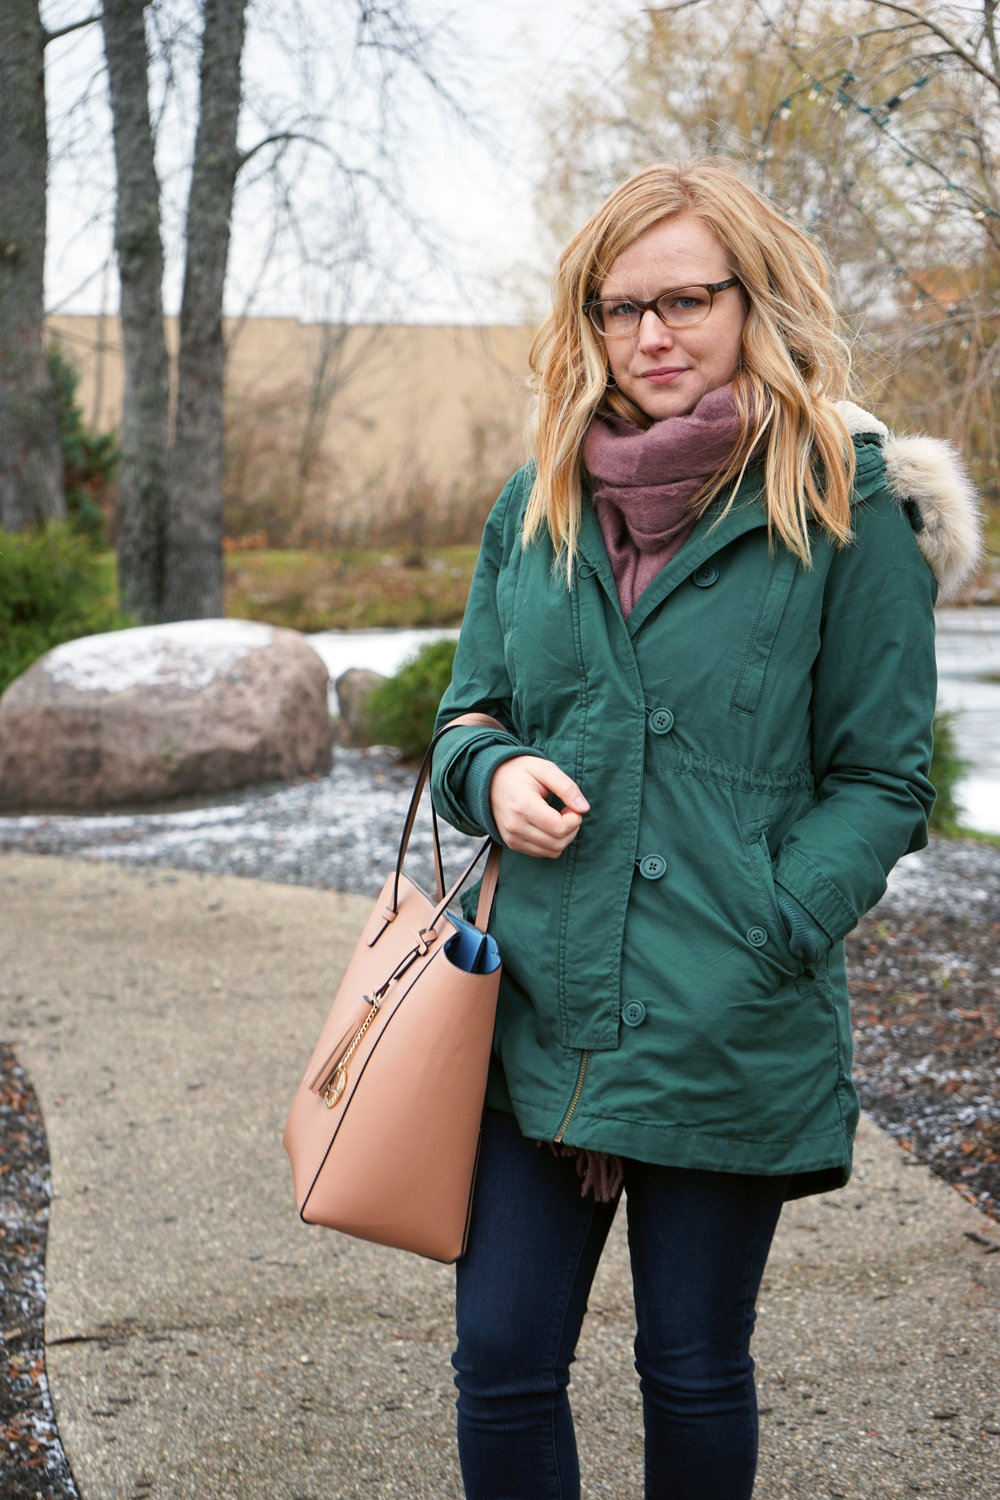 Maggie a la Mode - Asos Supersoft Long Woven Scarf Tassels Dusty Mauve/Pink, Gap 2-in-1 Hooded Parka Cucumber Peel, Paige Verdugo Skinny Jeans Reed, Blue Les Copains Tote